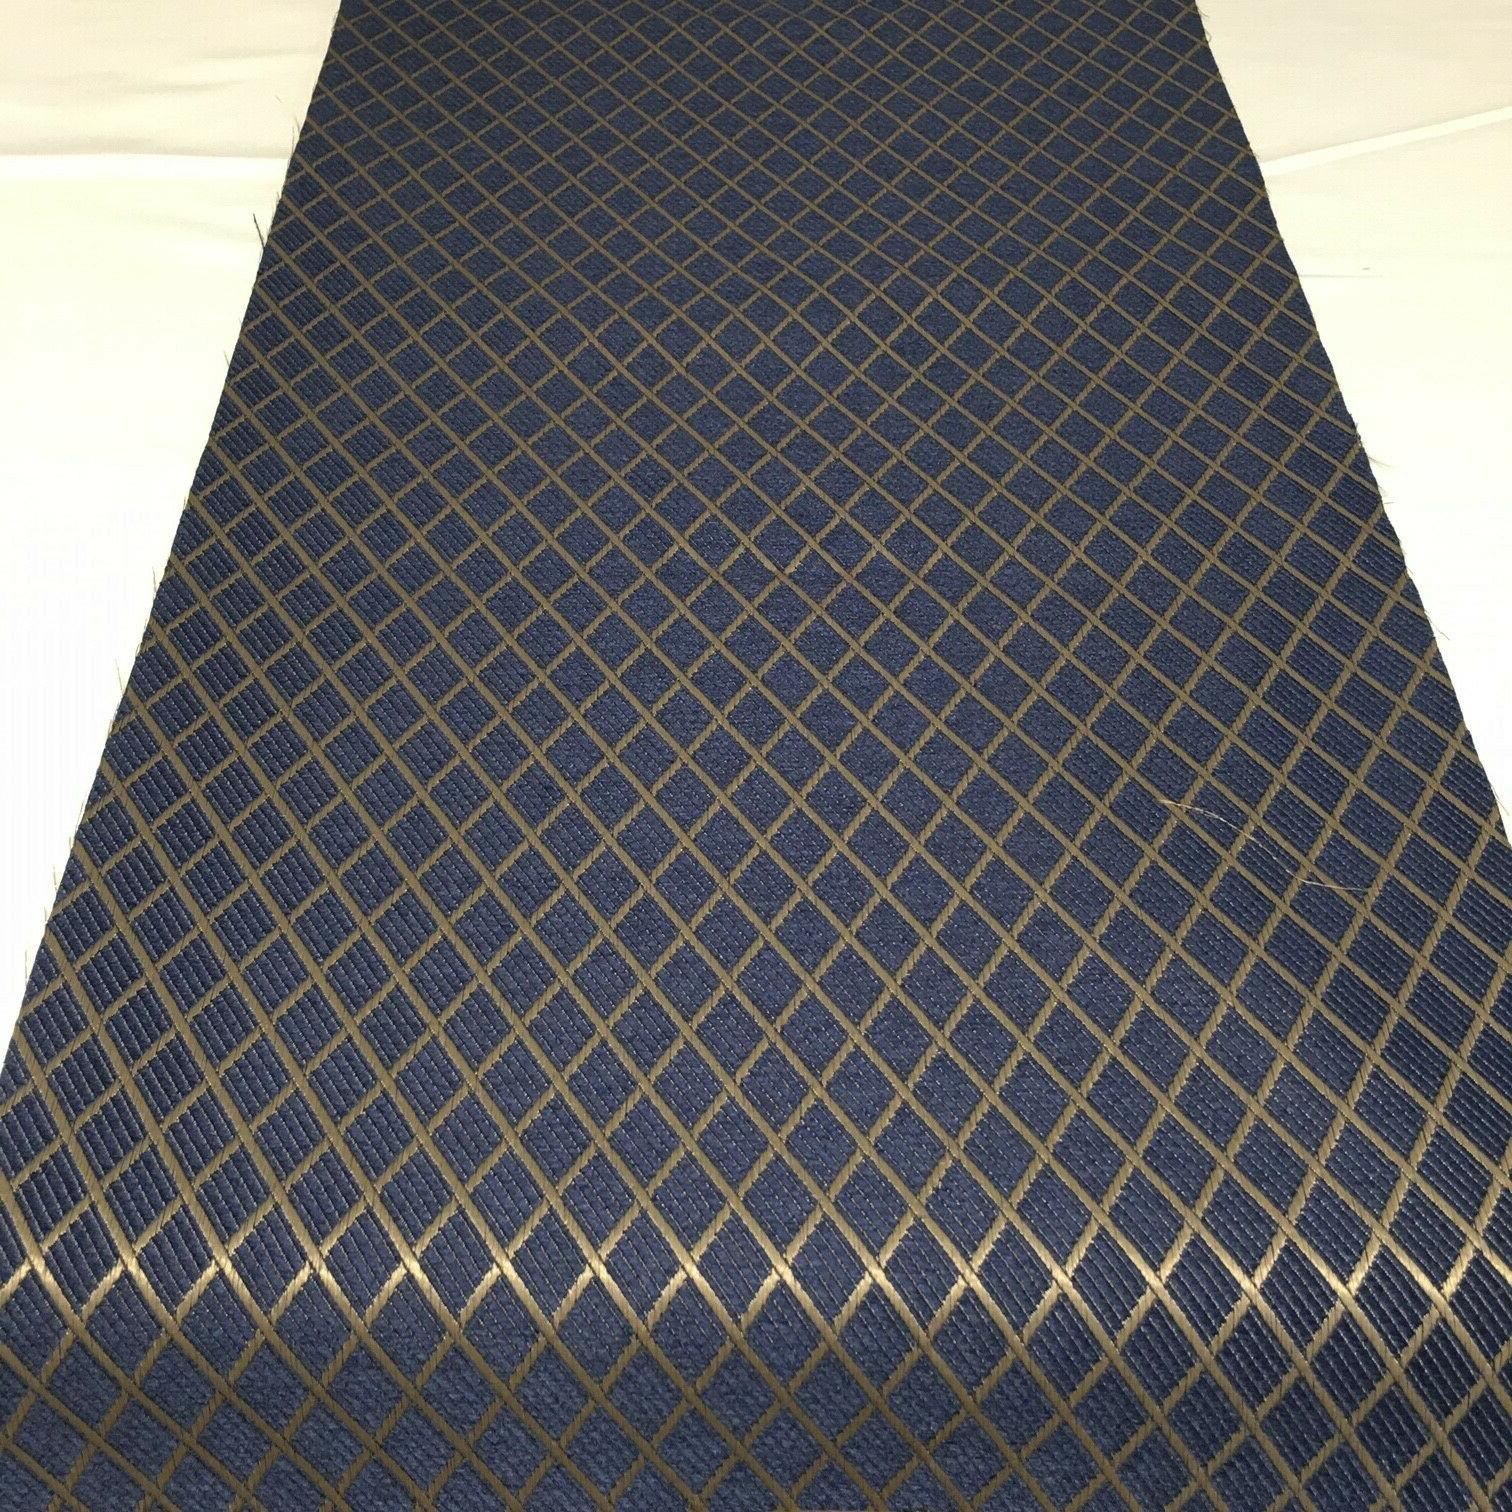 table runner blue with gold diamond pattern